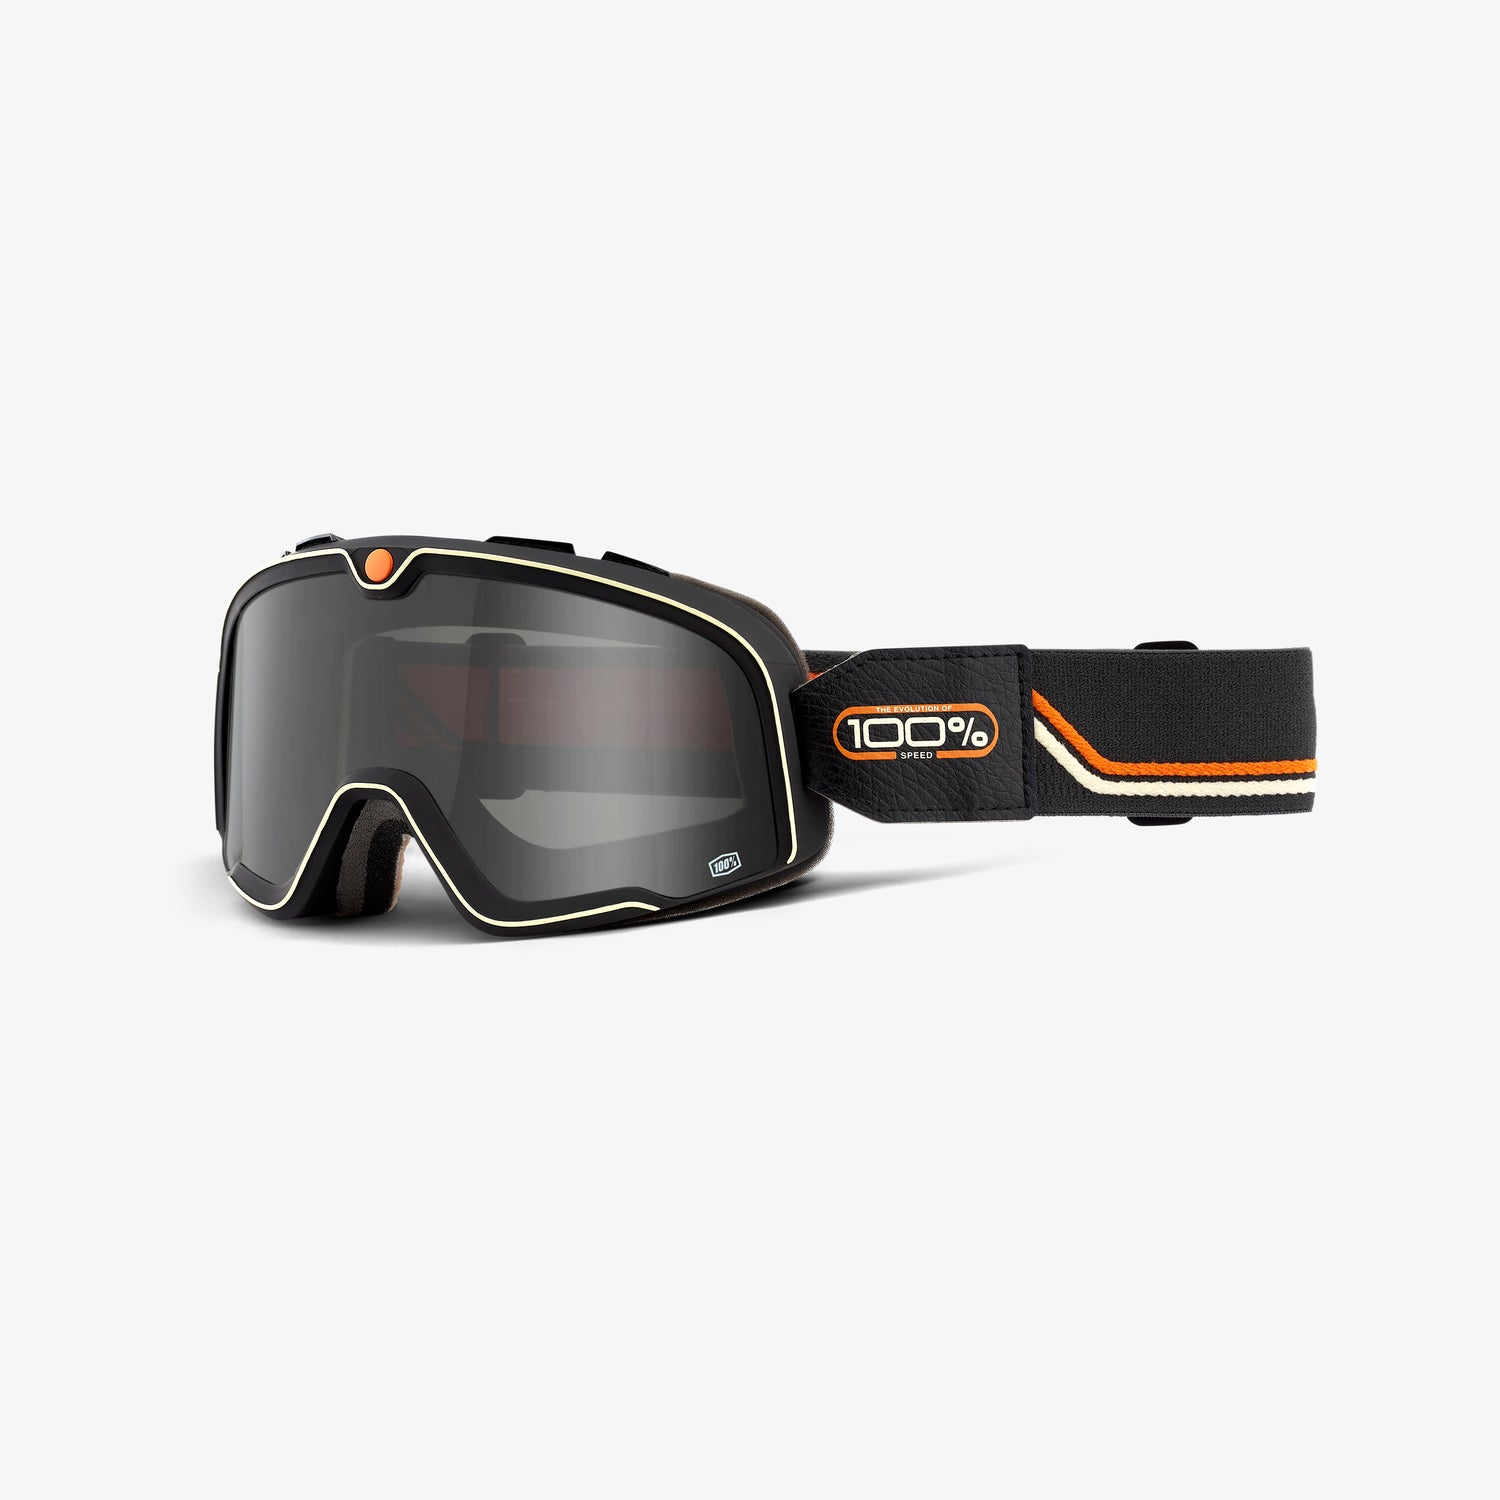 BARSTOW Goggle Team Speed Smoke Lens